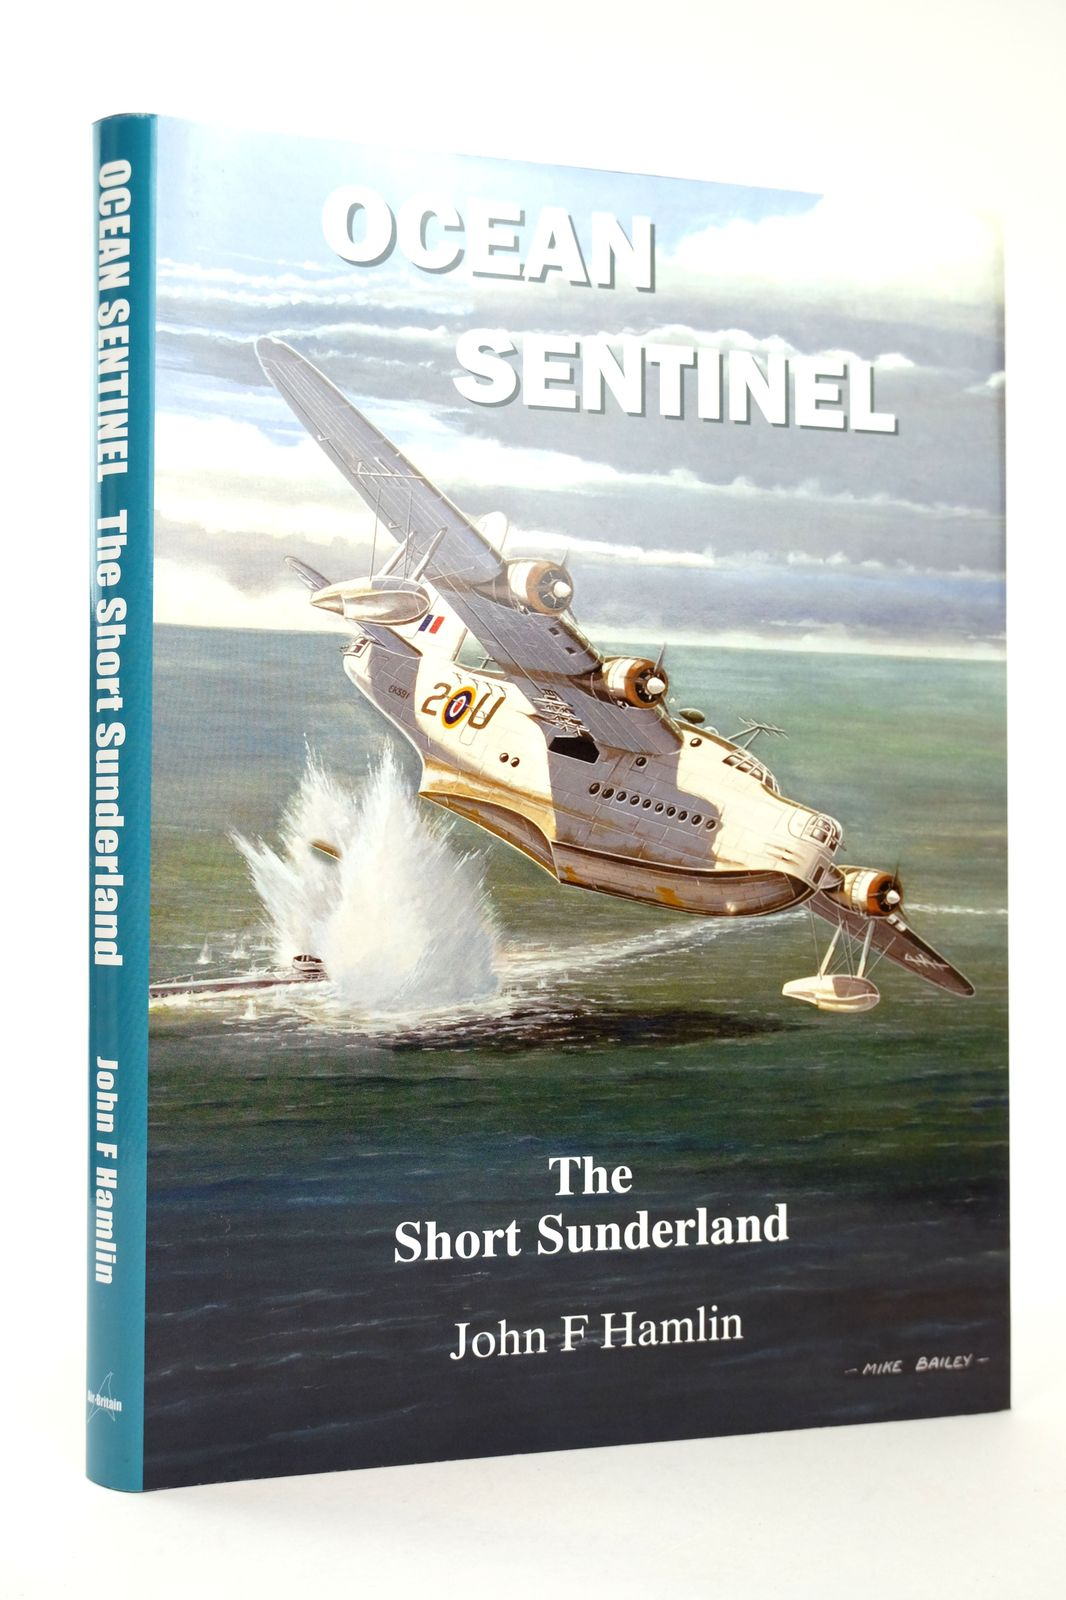 Photo of OCEAN SENTINEL: THE SHORT SUNDERLAND written by Hamlin, John F. published by Air-Britain (STOCK CODE: 1818683)  for sale by Stella & Rose's Books